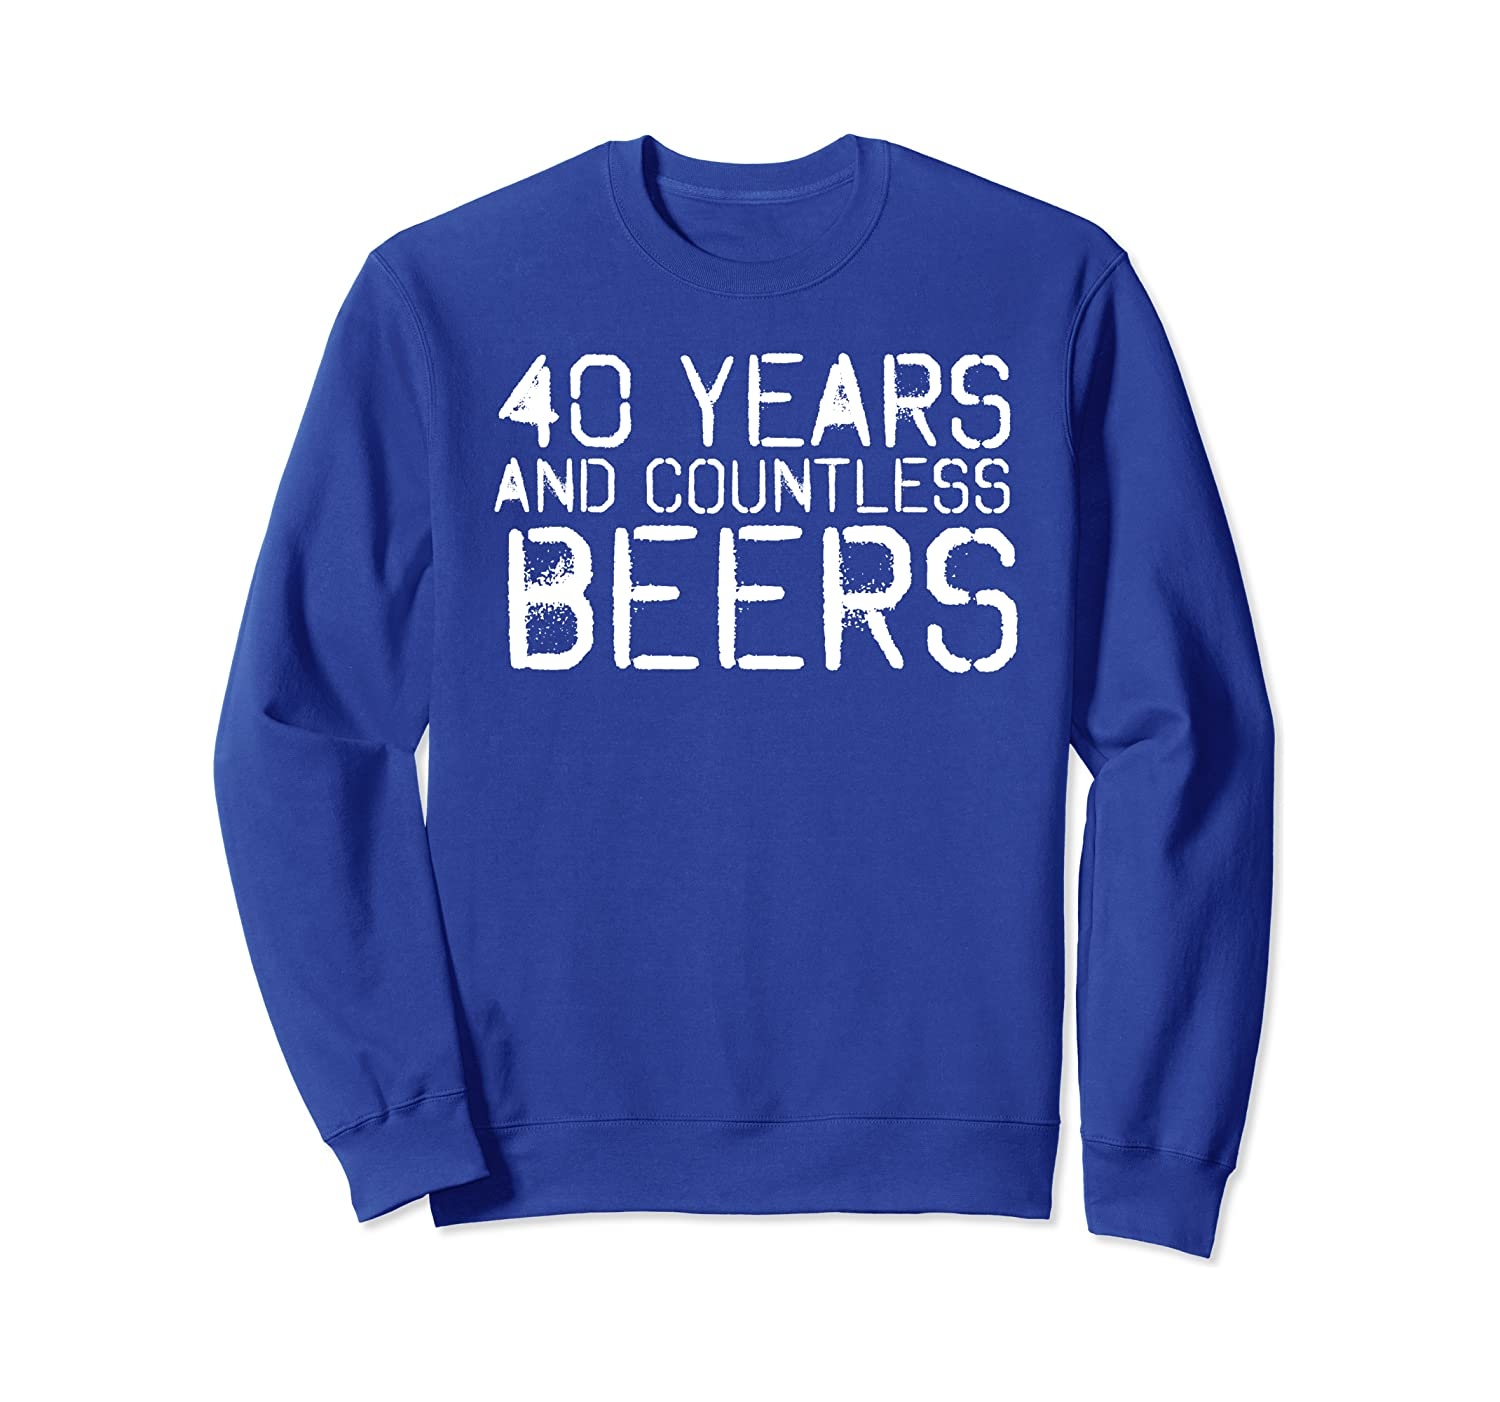 40 YEARS AND COUNTLESS BEERS Funny Drinking Gift Idea Sweatshirt-Awarplus